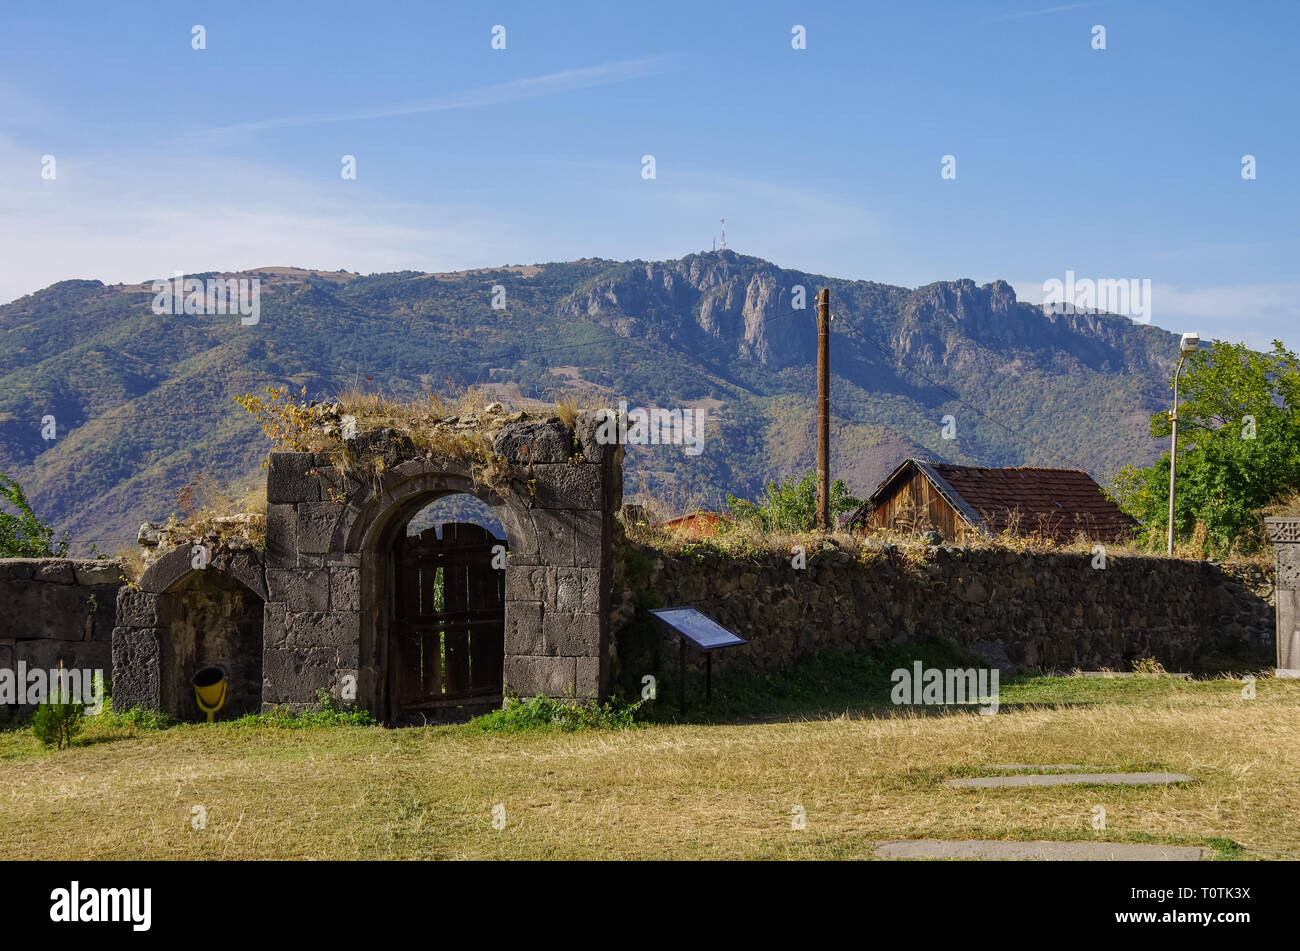 Gate and wall of medieval Armenian monastic complex Haghpatavank, Haghpat Stock Photo